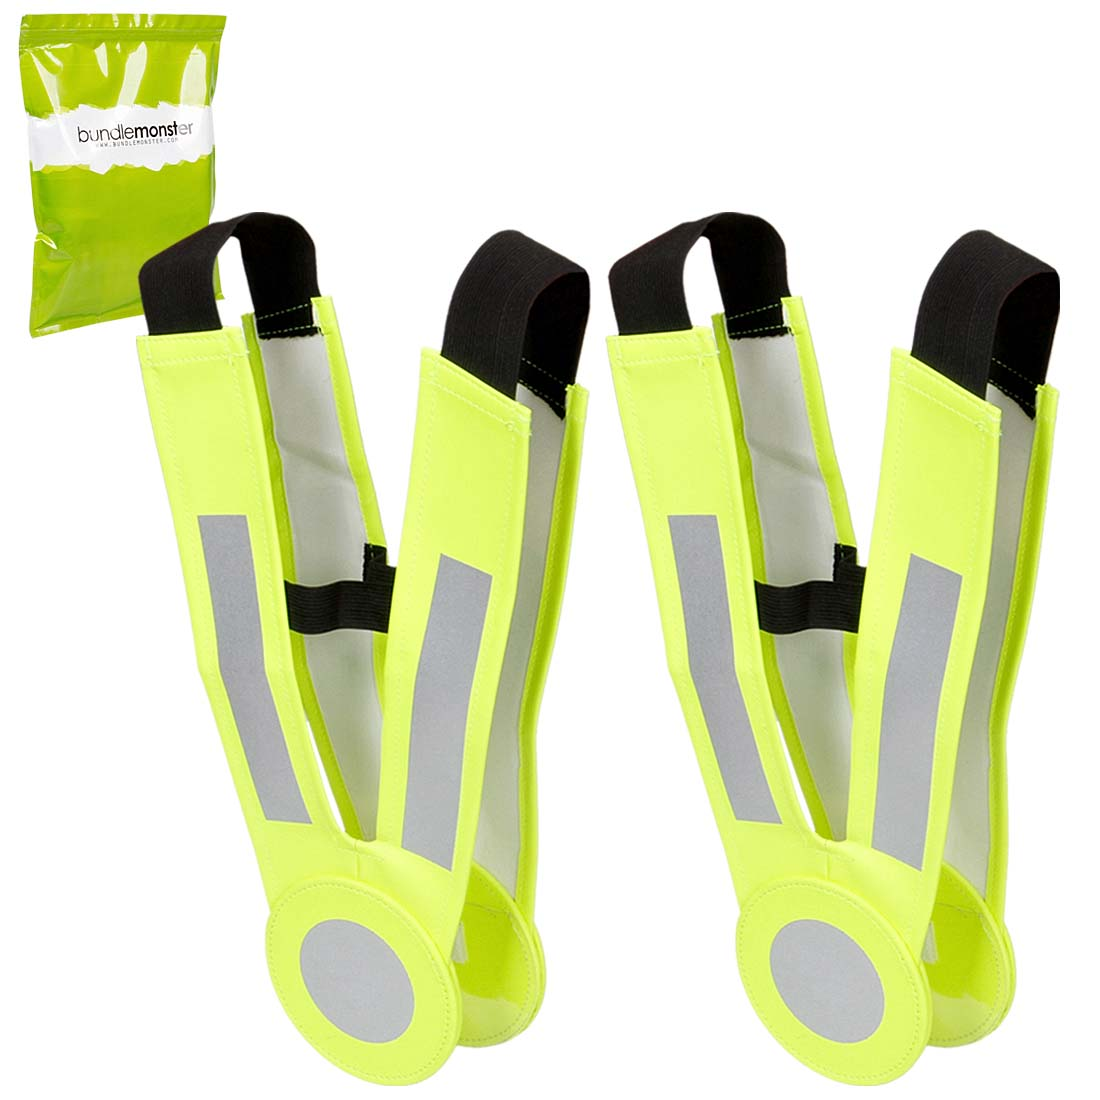 RoryTory 2pc Kids Outdoor Sports Neon Yellow and Silver Reflective Safety Belts